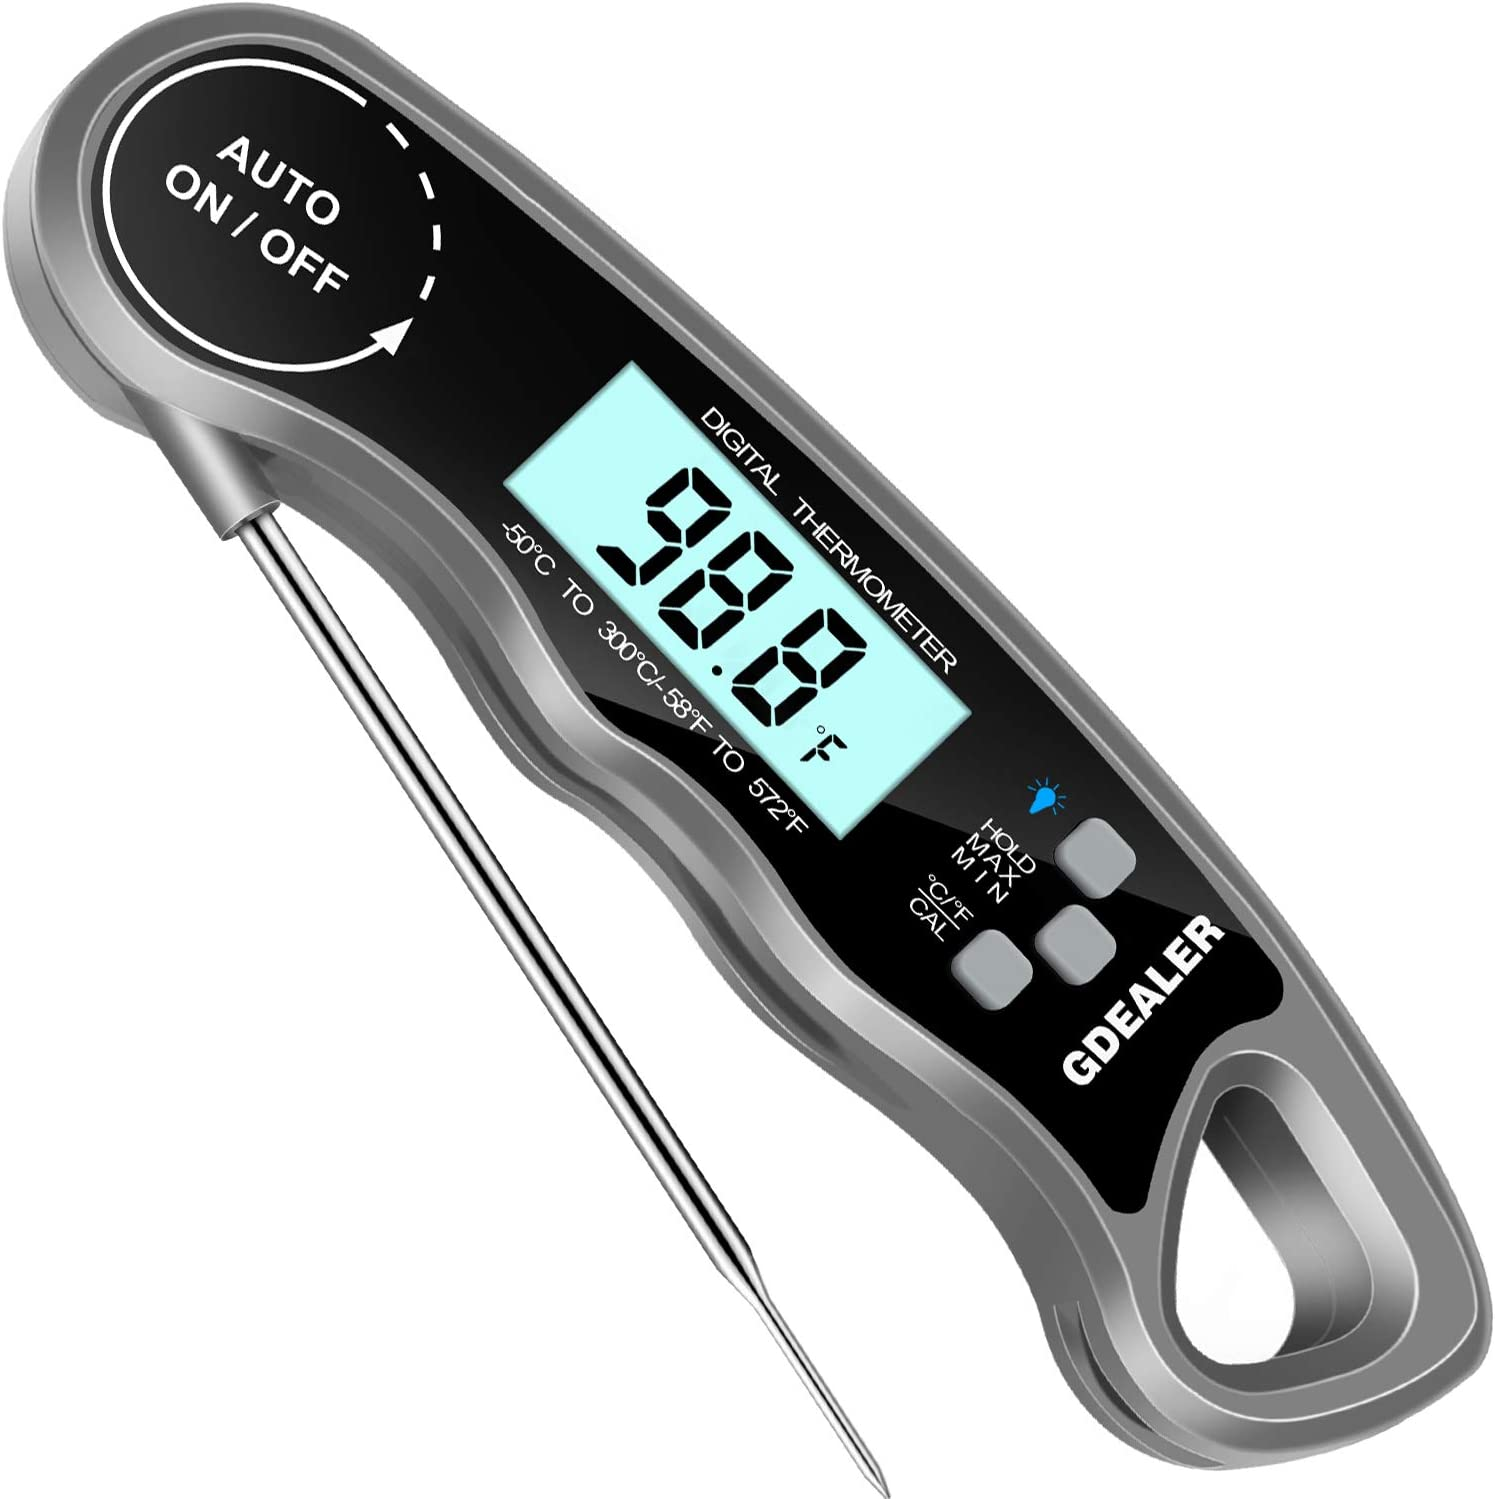 "GDEALER Meat Thermometer Digital Instant Read Thermometer Ultra-Fast Cooking Food Thermometer with 4.6"" Folding Probe Calibration Function for Kitchen Milk Candy, BBQ Grill, Smokers Gray"